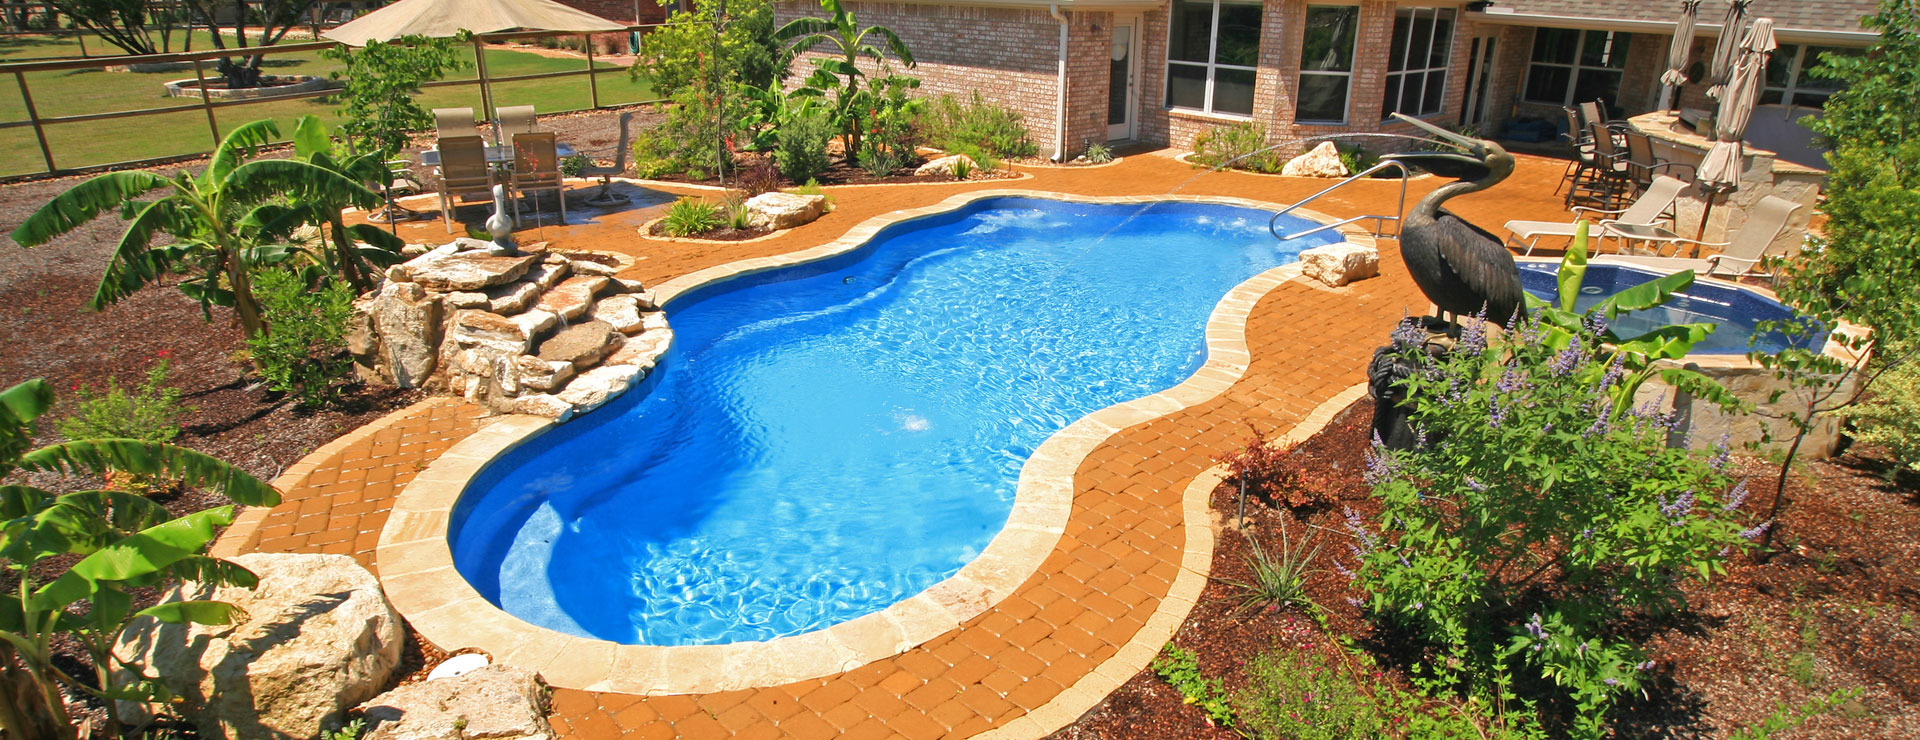 Paradise Pools - Pool Installation, Service and Supplies since 1963